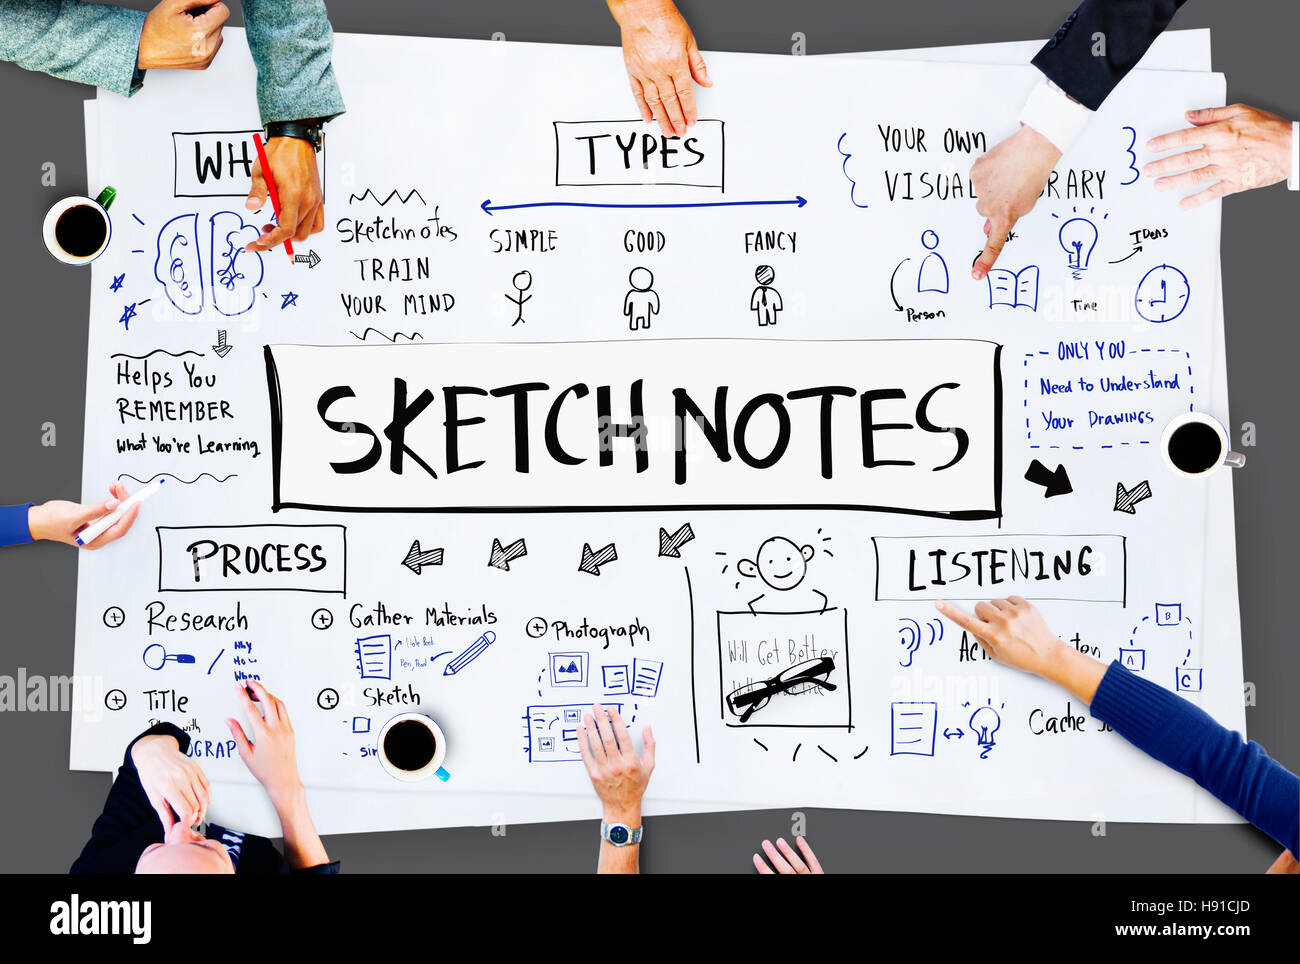 Sketch Notes Creative Drawing Design Graphic Concept Stock Photo